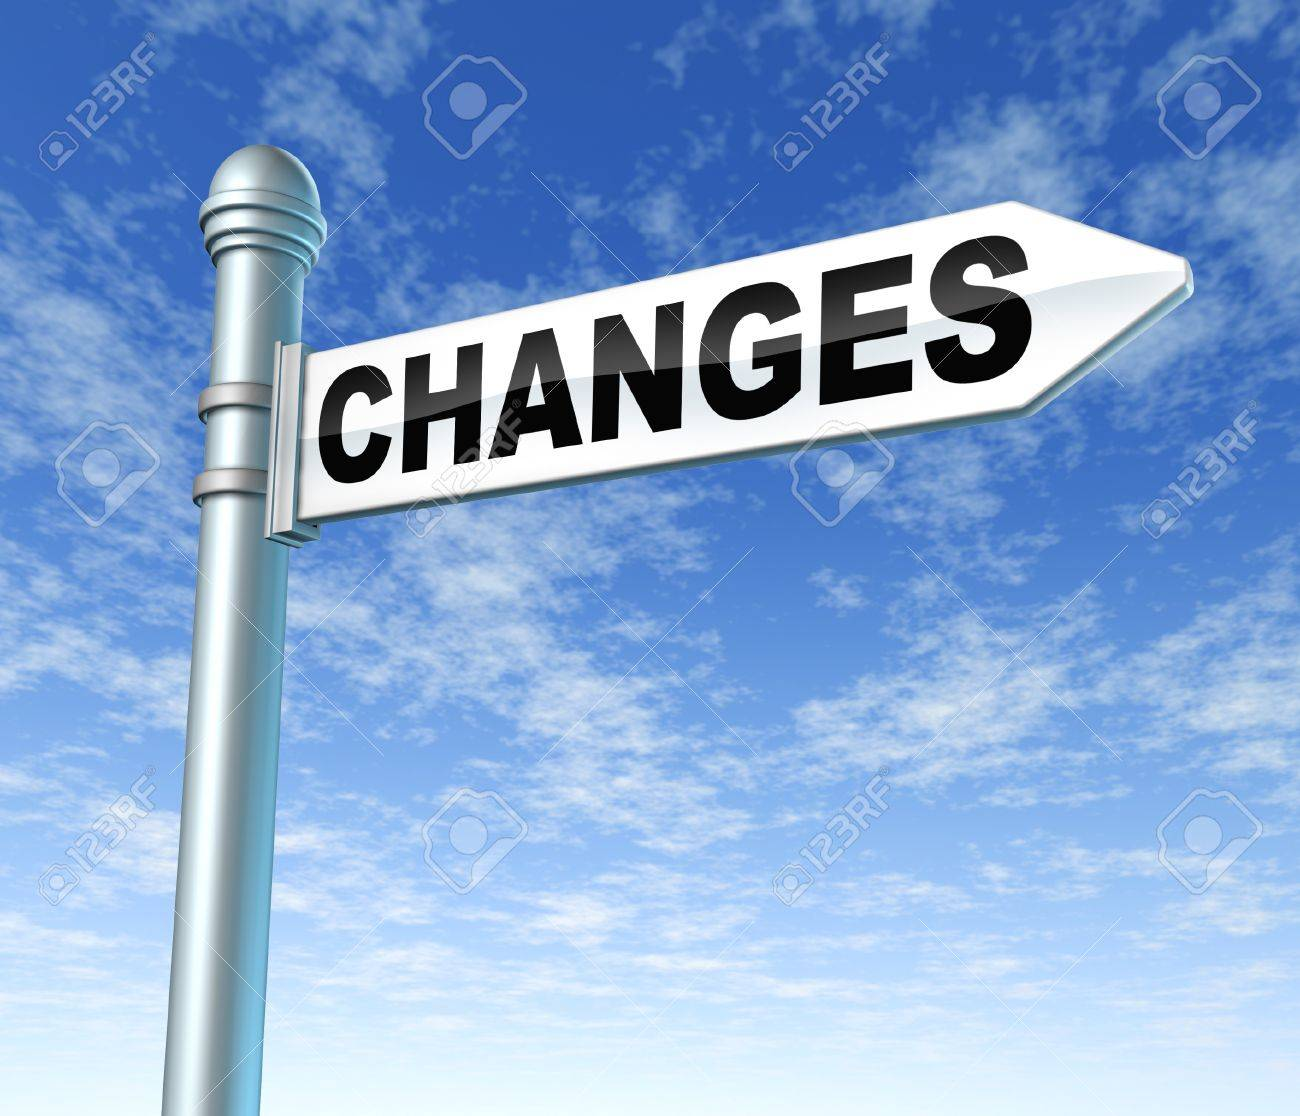 changes signpost adapting evolving Stock Photo - 11409649